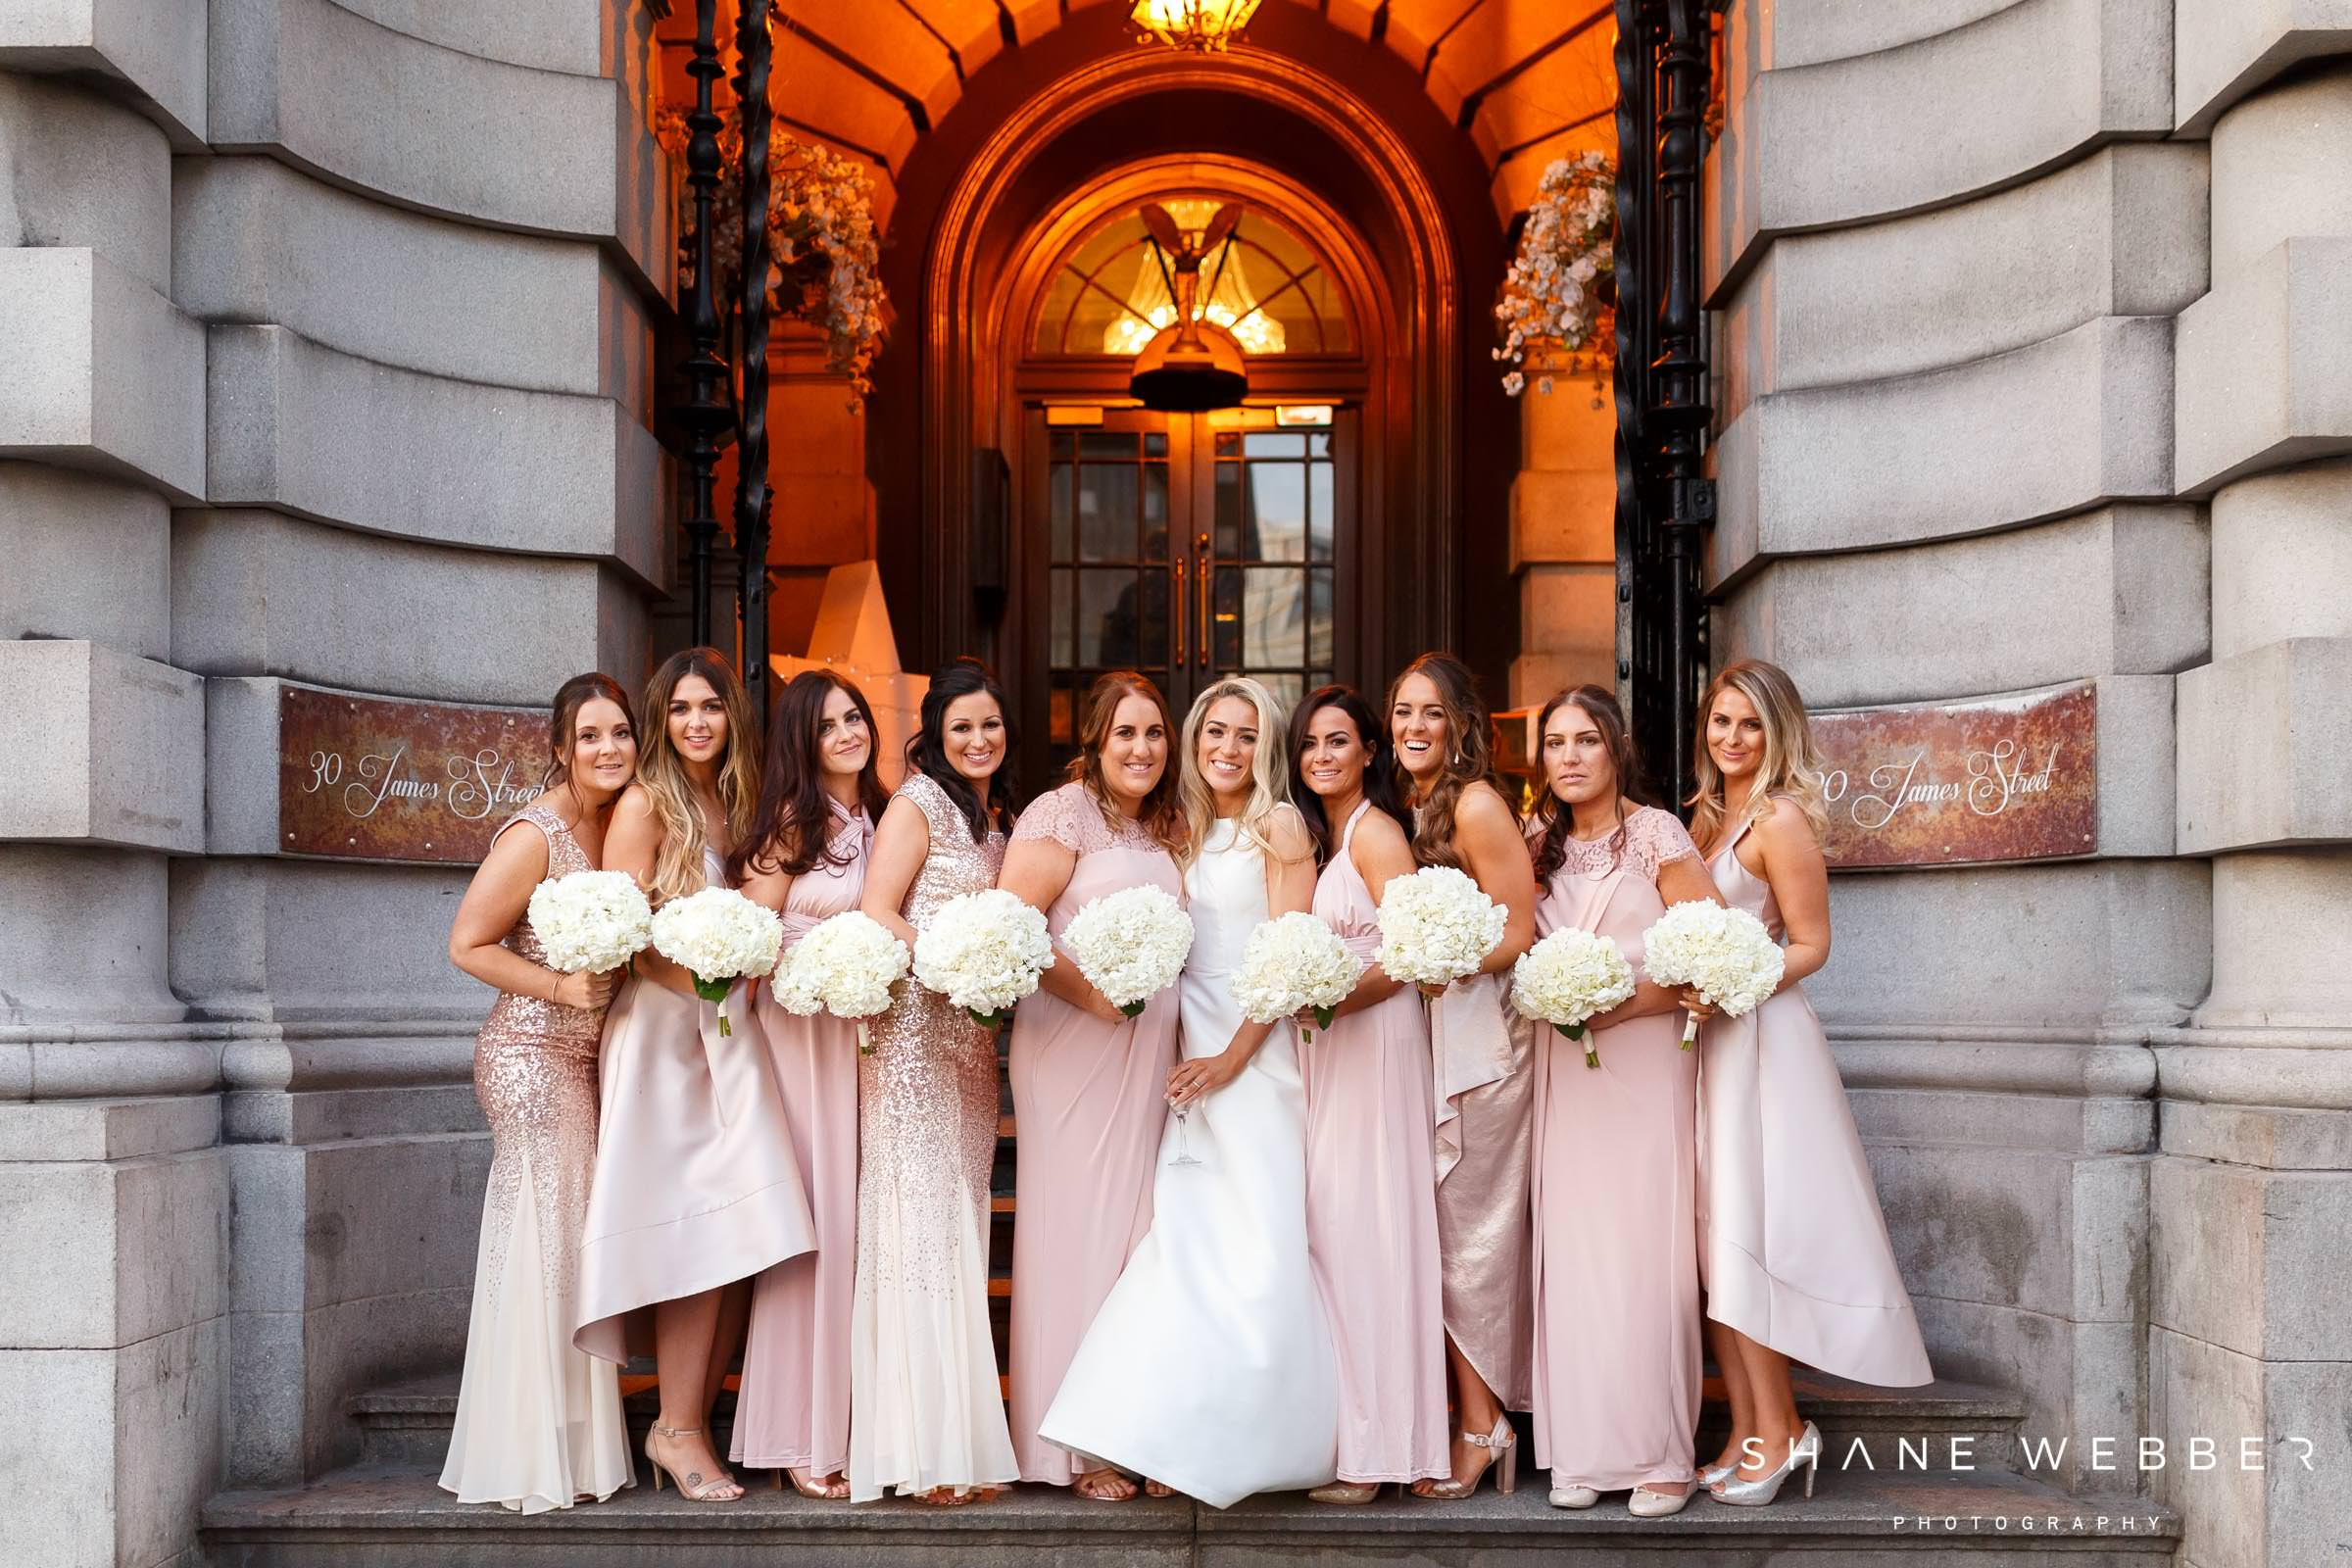 bridesmaid portrait at 30 james street